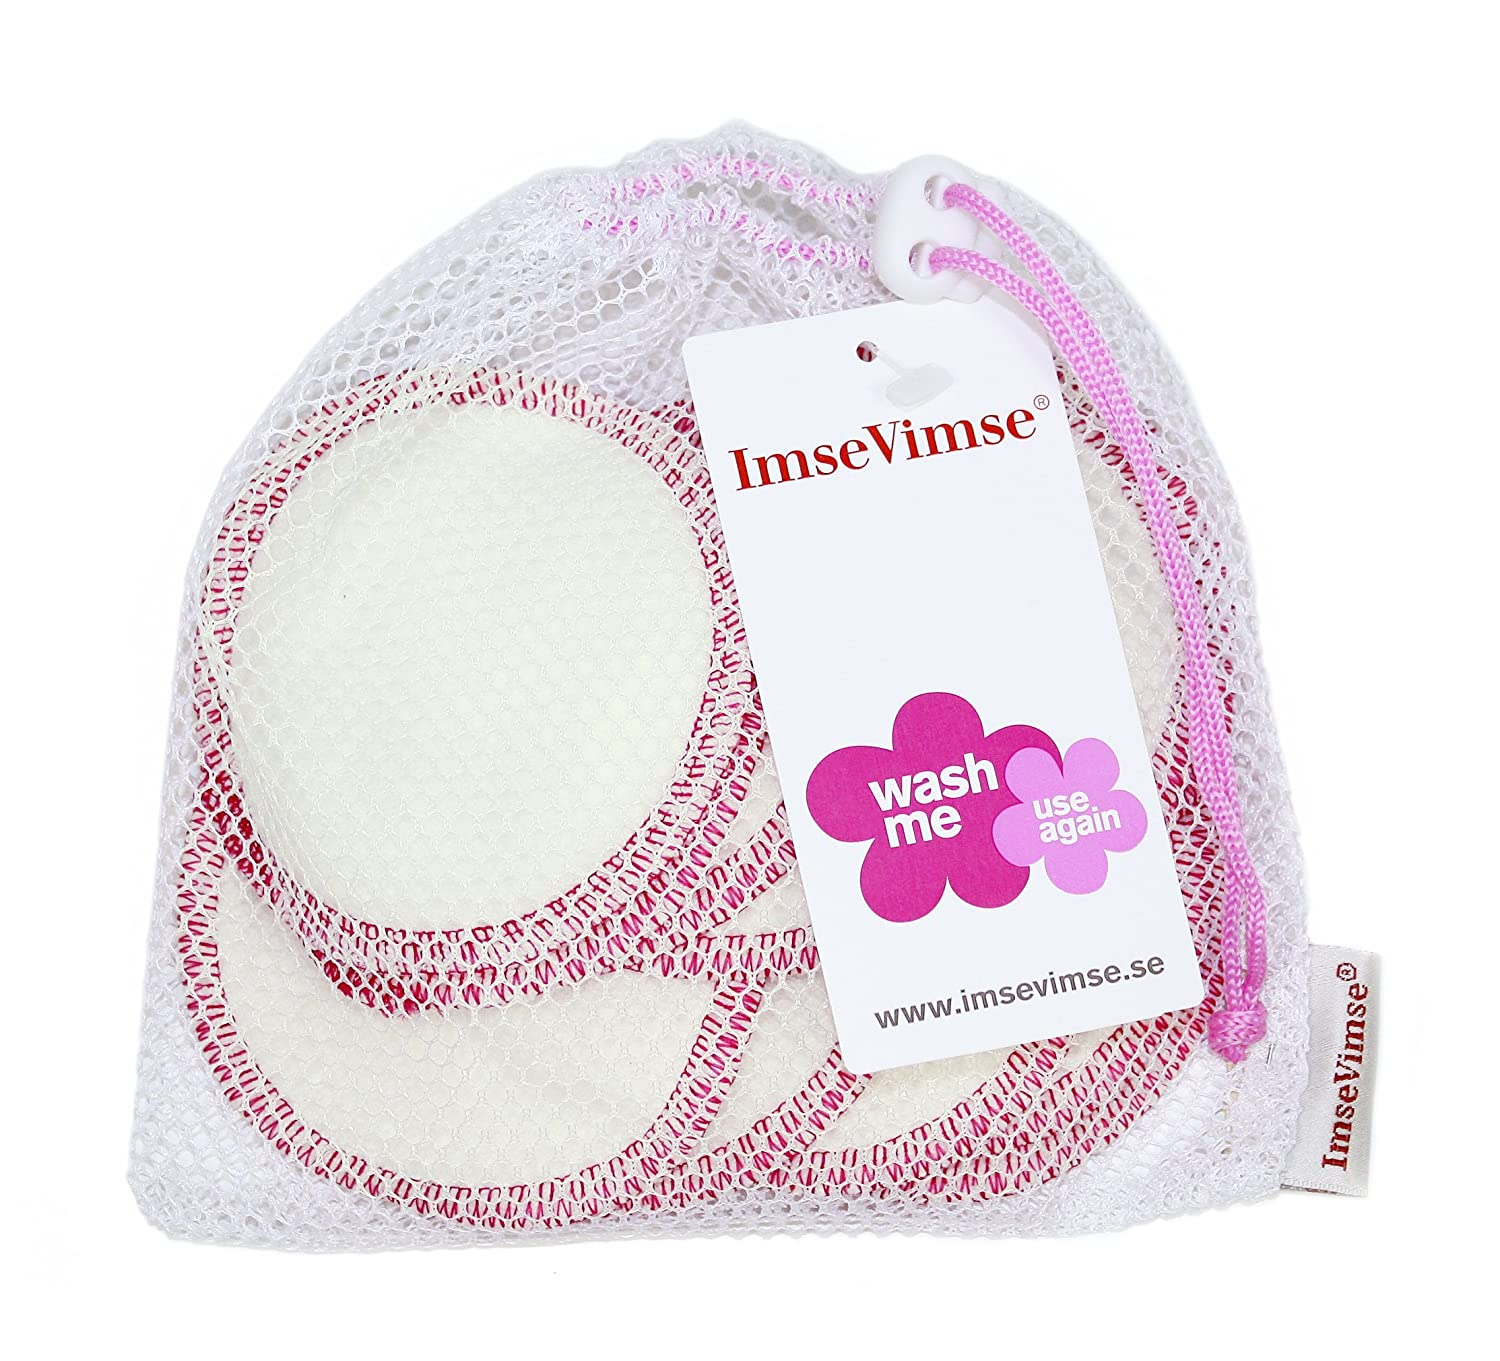 ImseVimse Washable Make-Up Removal Pads 1805